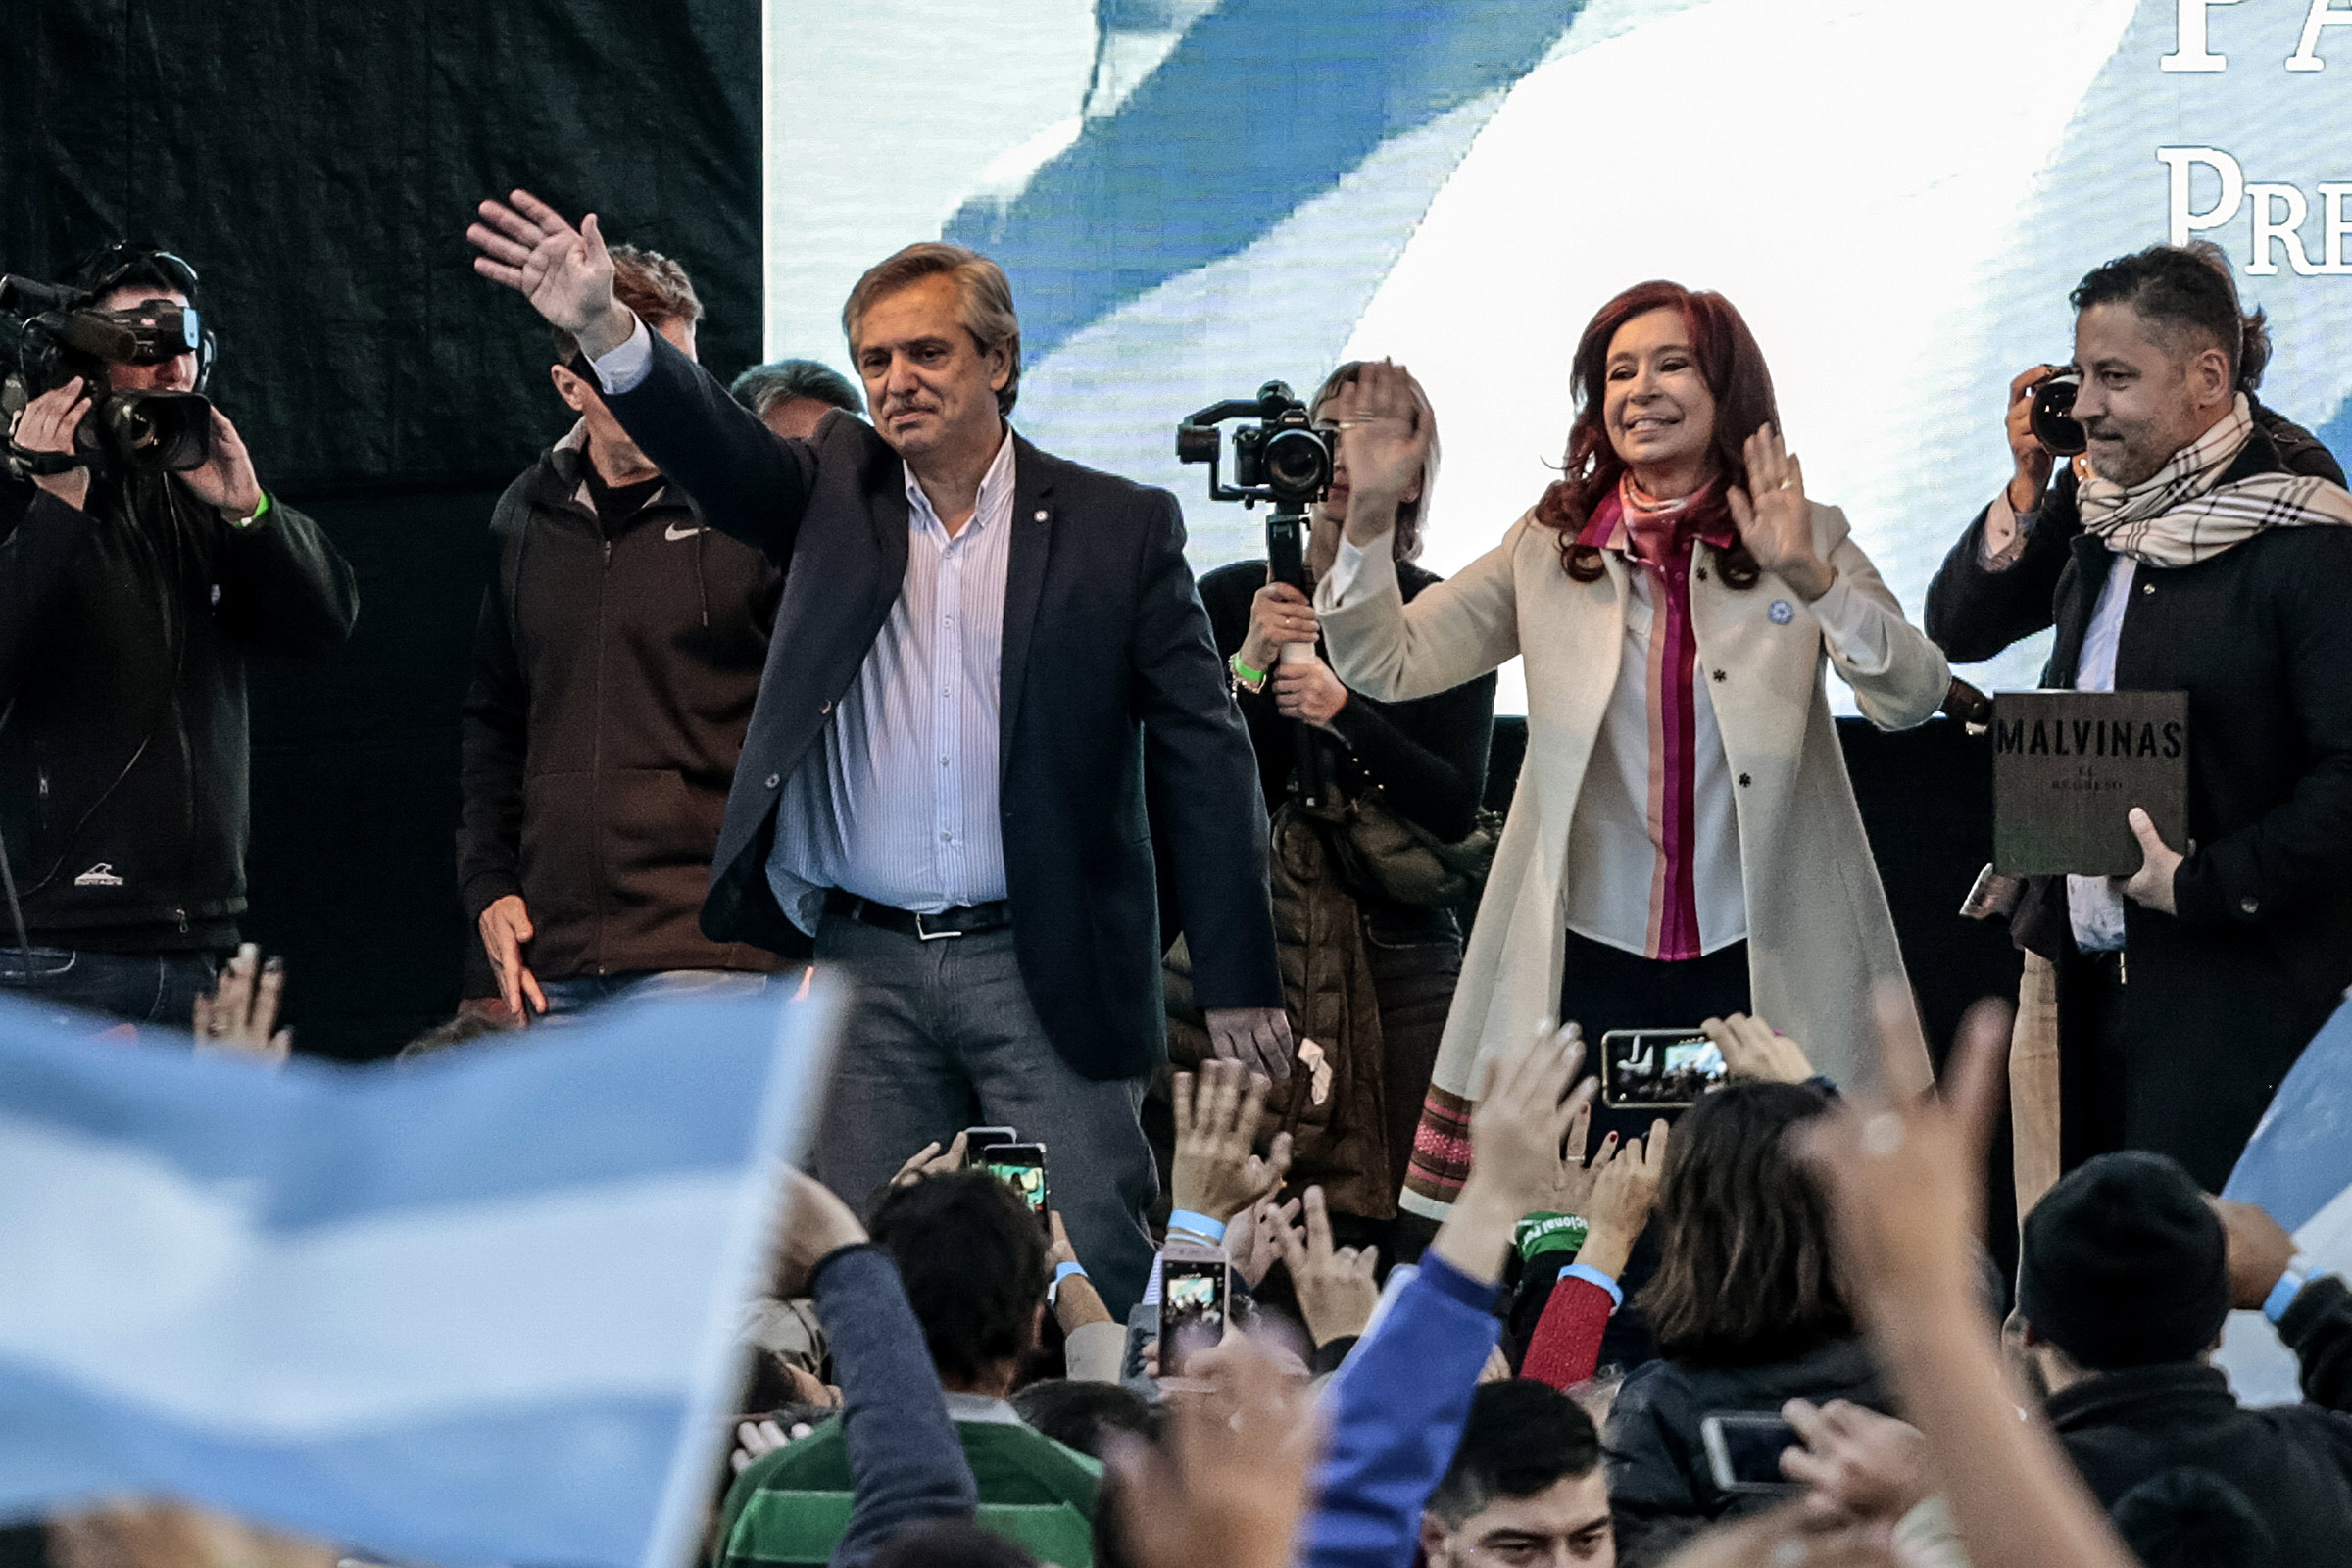 Presidential candidate Alberto Fernandez and former president of Argentina Cristina Fernandez de Kirchner wave to attendees during their first campaign event in Merlo, Argentina, on May 25.